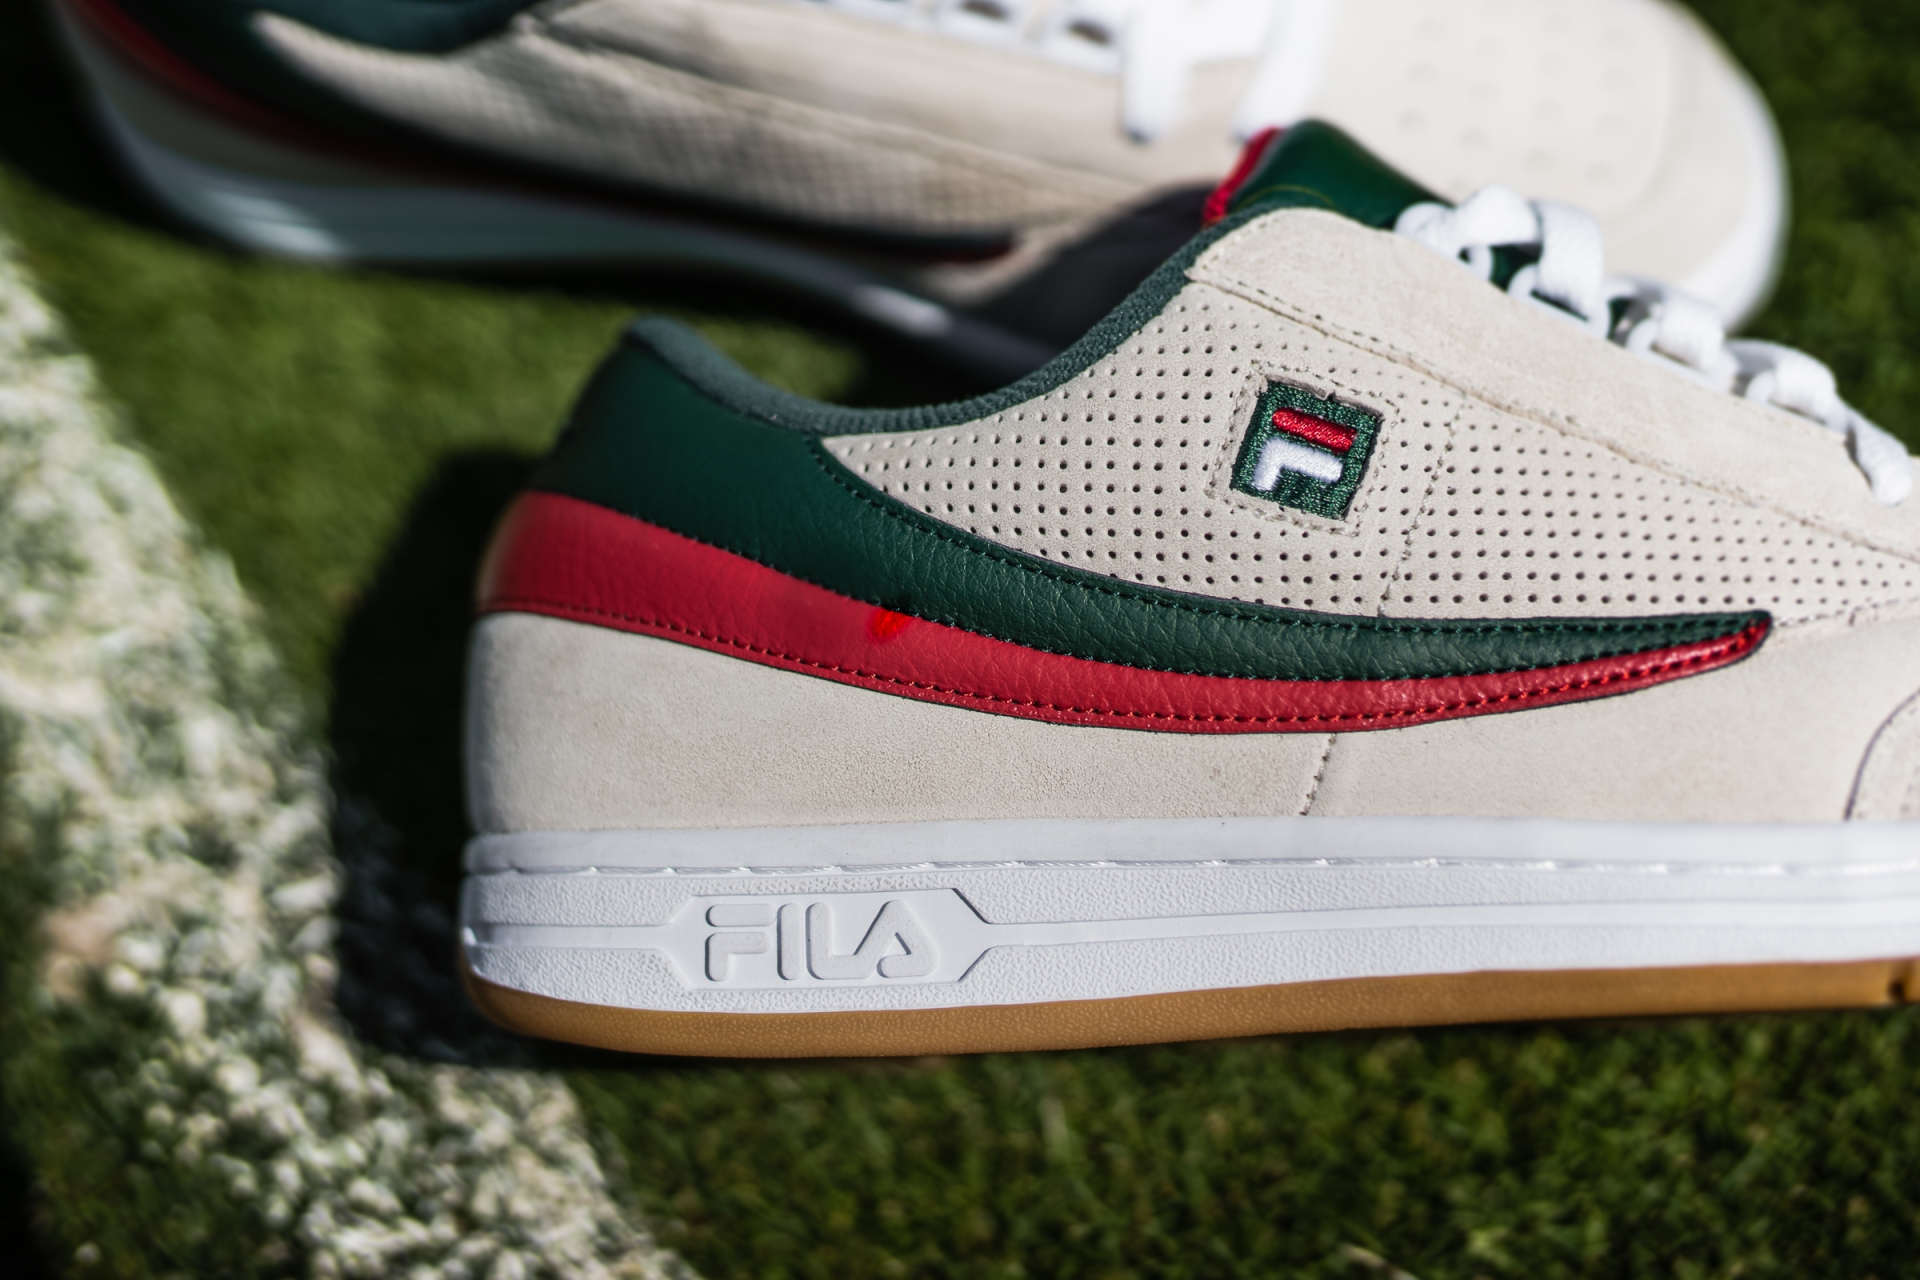 FILA and Packer Shoes Debut Sneaker Collaboration with the International Tennis Hall of Fame